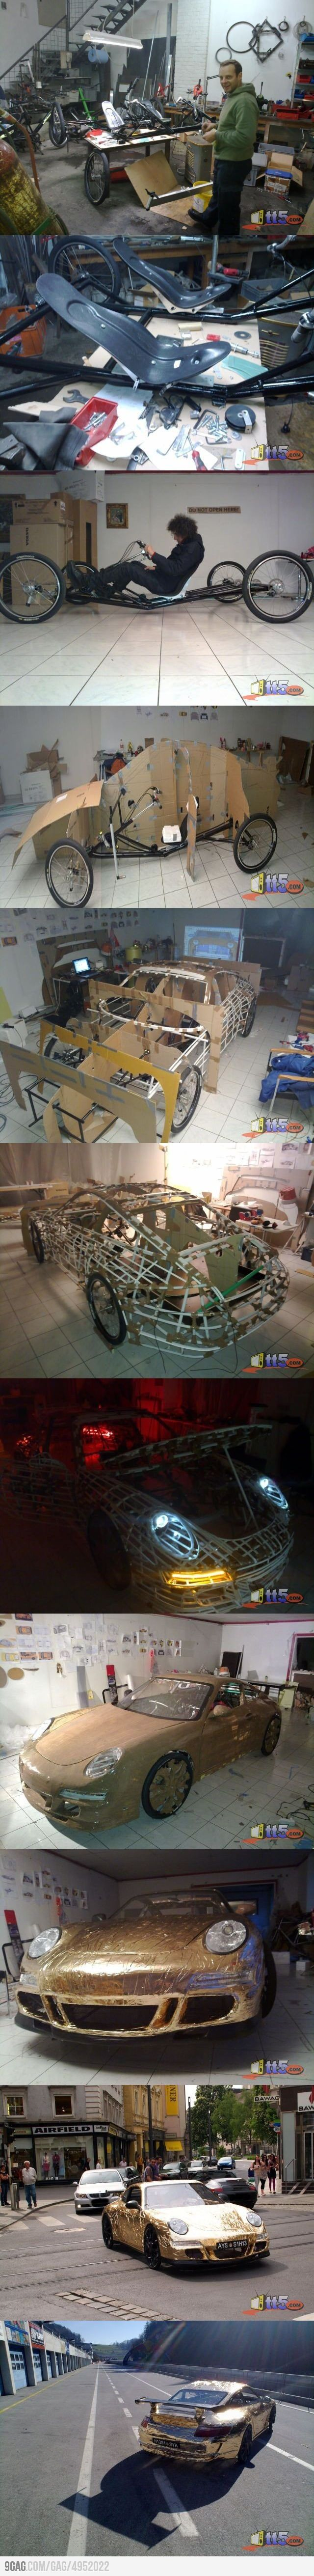 Gtrlife random gt r photo thread page 81 gt r media gt r life - Porsche Cars Funny Images Funny Pictures Funny Cars Awesome Stuff This Is Awesome Project Ideas Craft Ideas Random Stuff